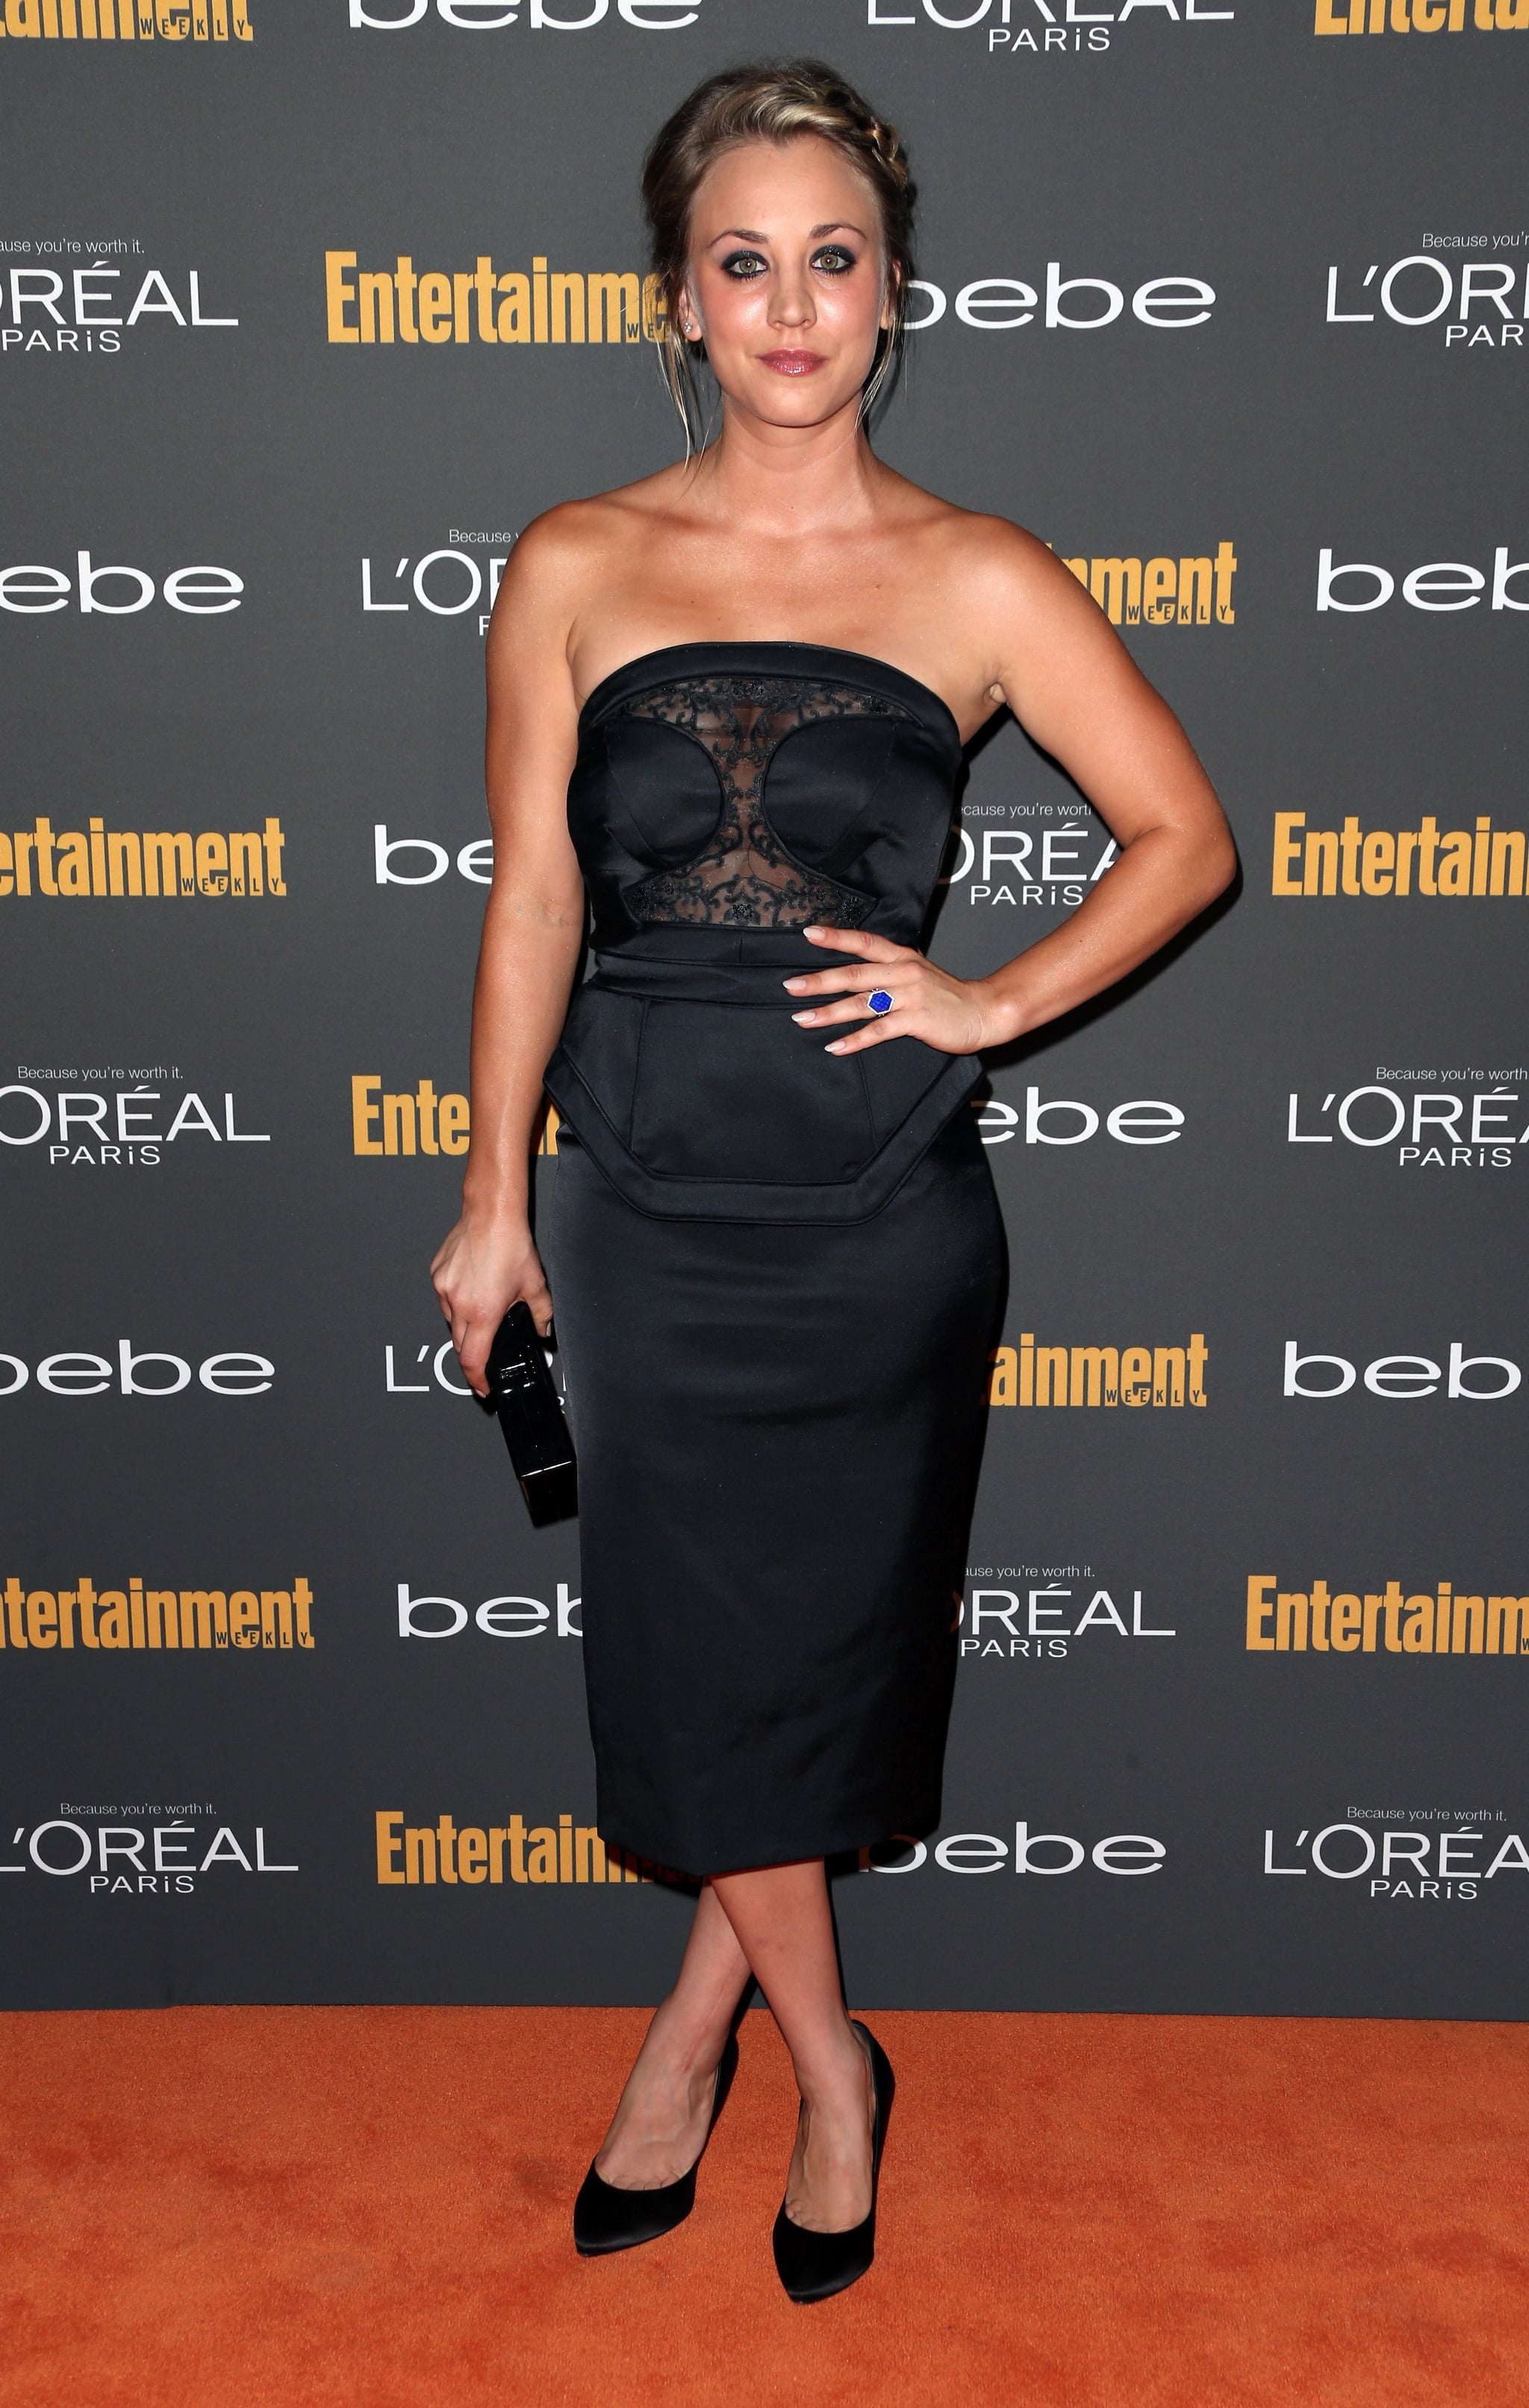 Kaley Cuoco was subtly sexy in a black strapless Pamella Roland dress with a sheer lace bodice, Pedro Garcia satin pumps, and an Edie Parker clutch at the Entertainment Weekly pre-Emmys party in LA.